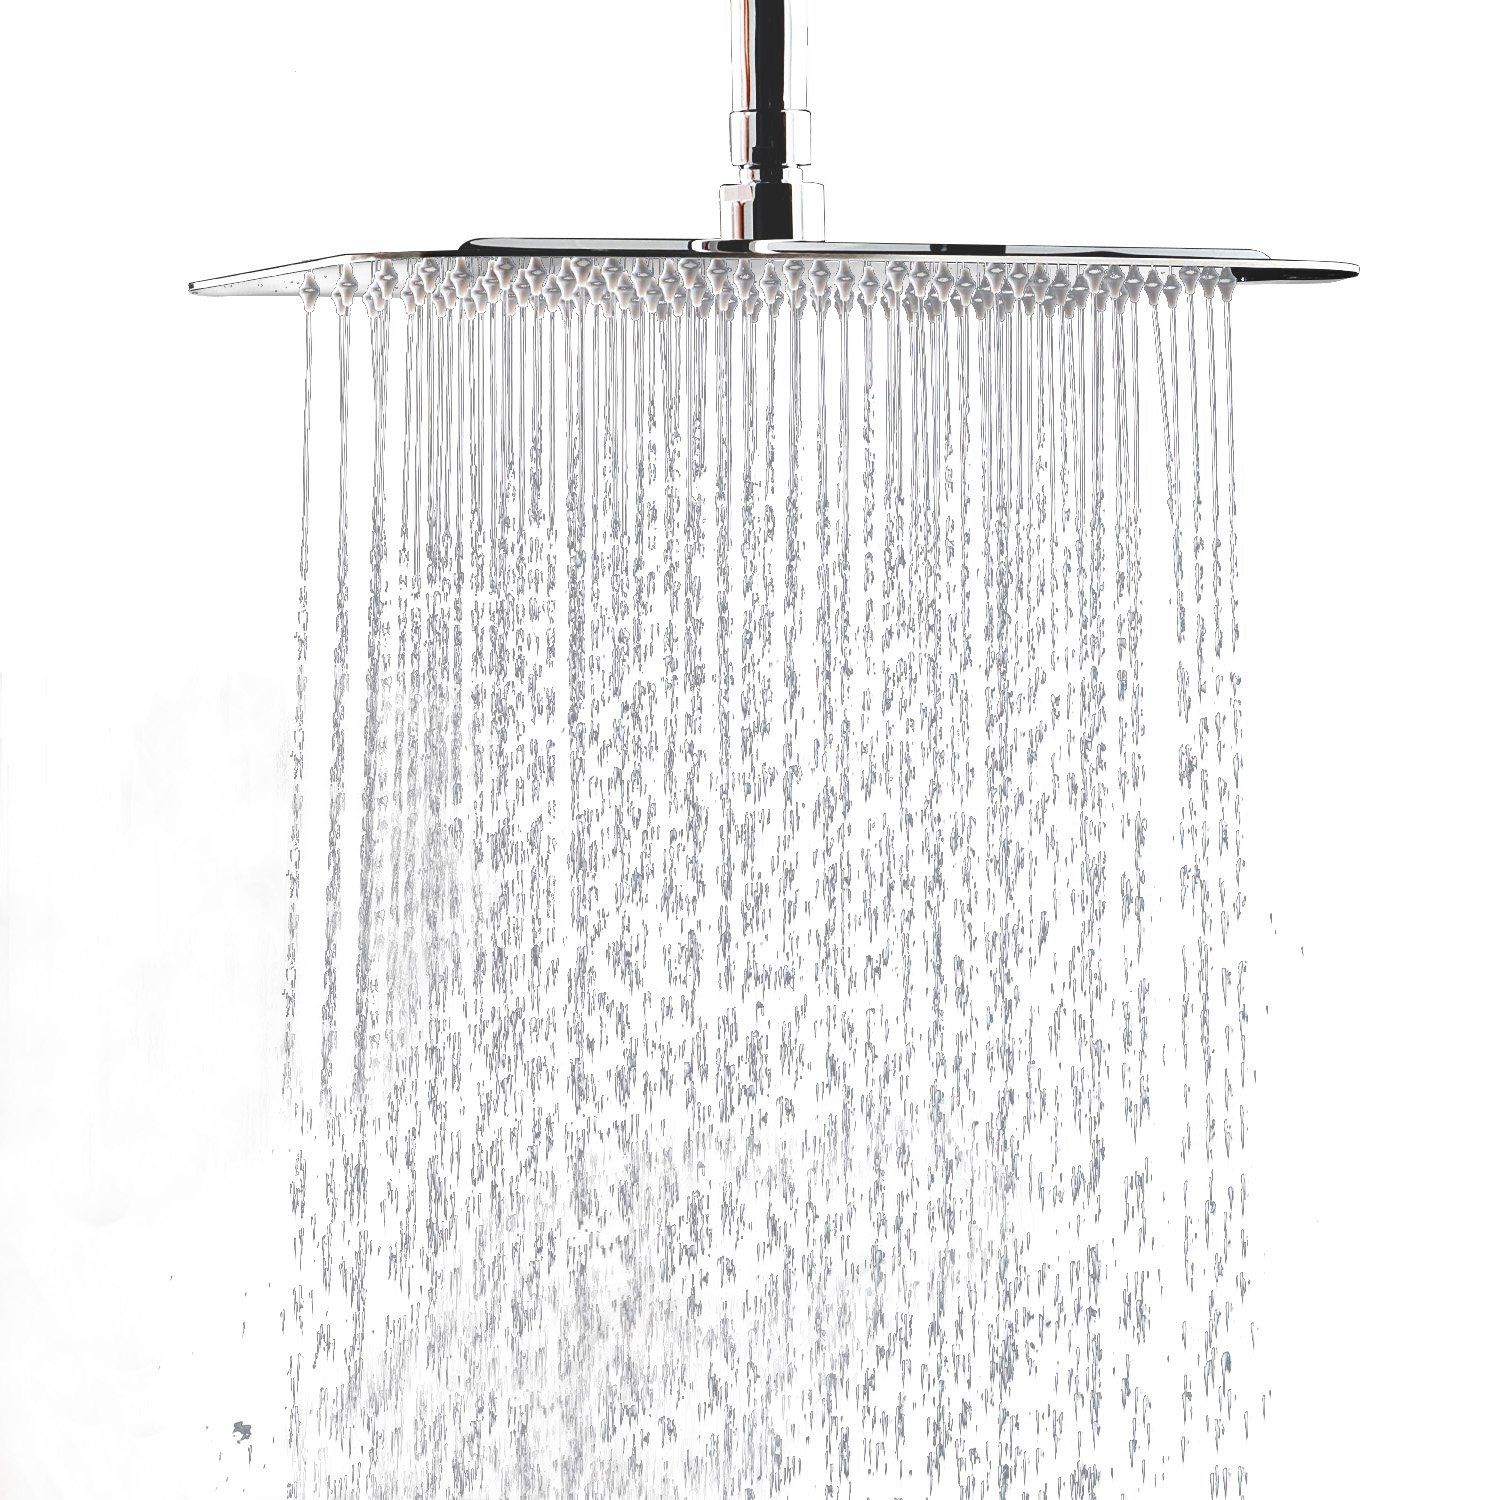 FuSenYing 10 Inch Rain Shower Head, 304 Stainless Steel, Silver FuSenYi E-Commerce Co. Ltd 10inch Head Only